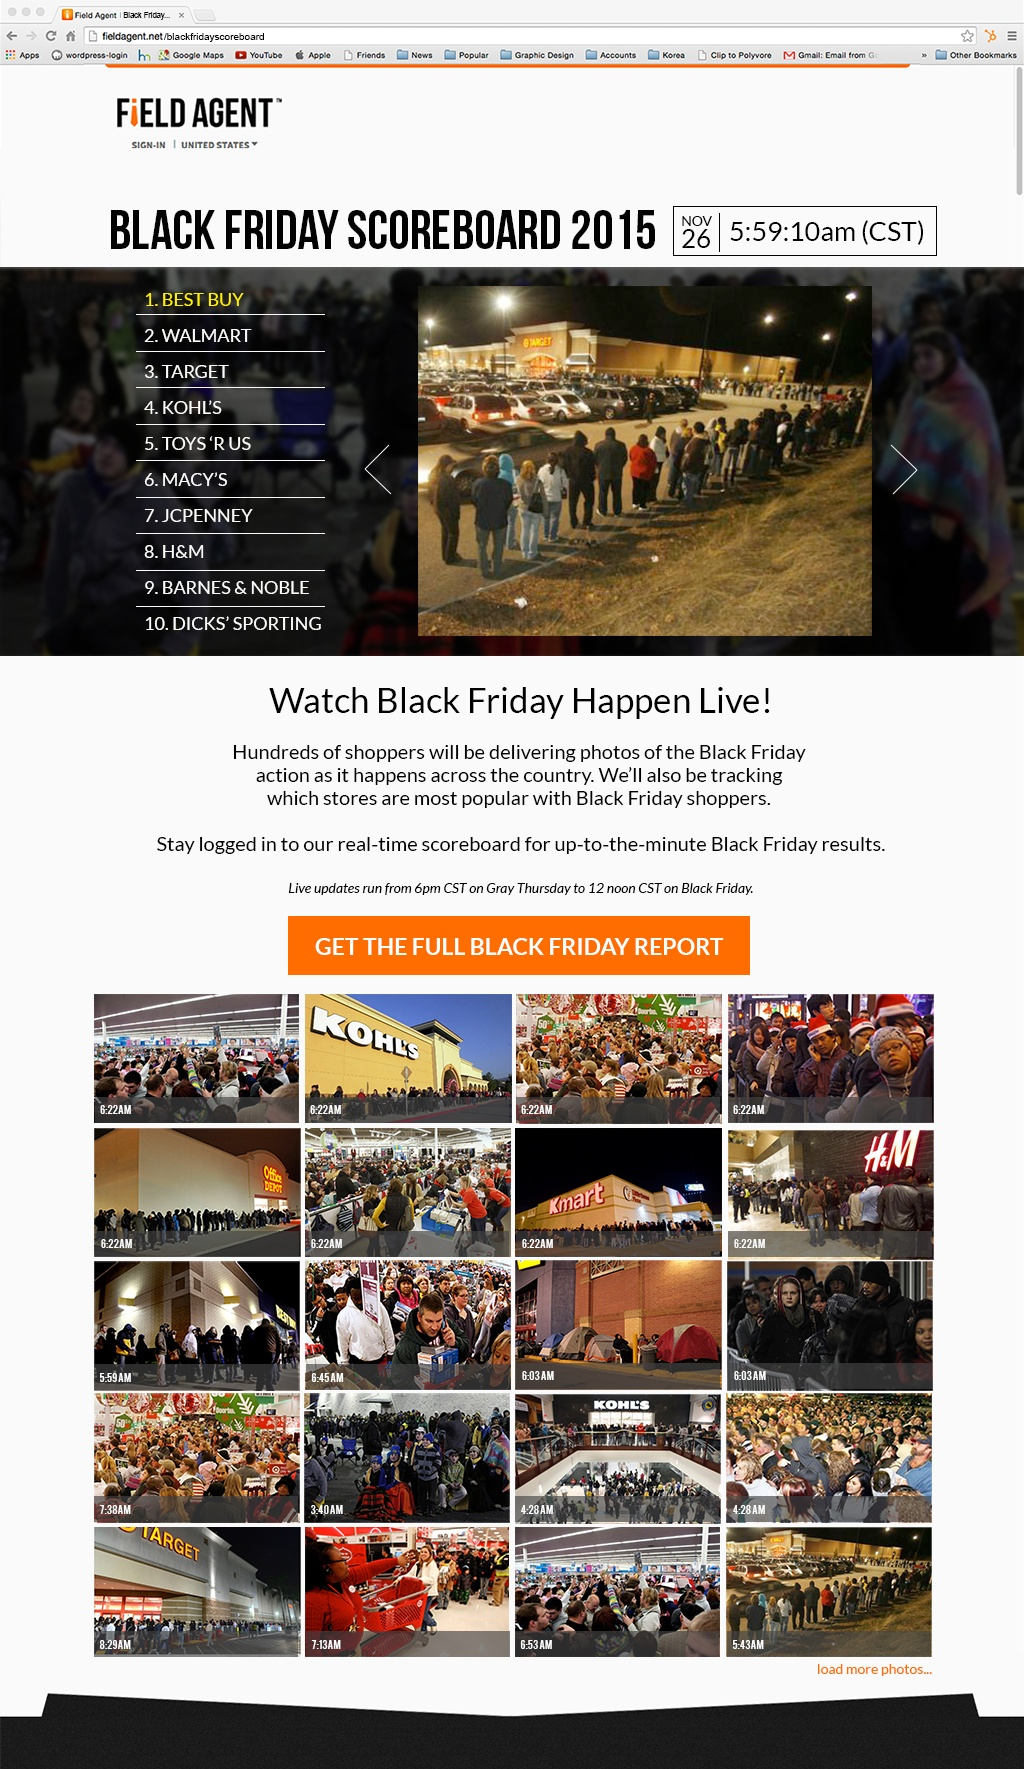 Field Agent Mobile Audits and Mobile Market Research - Black Friday Holiday Retail 2015